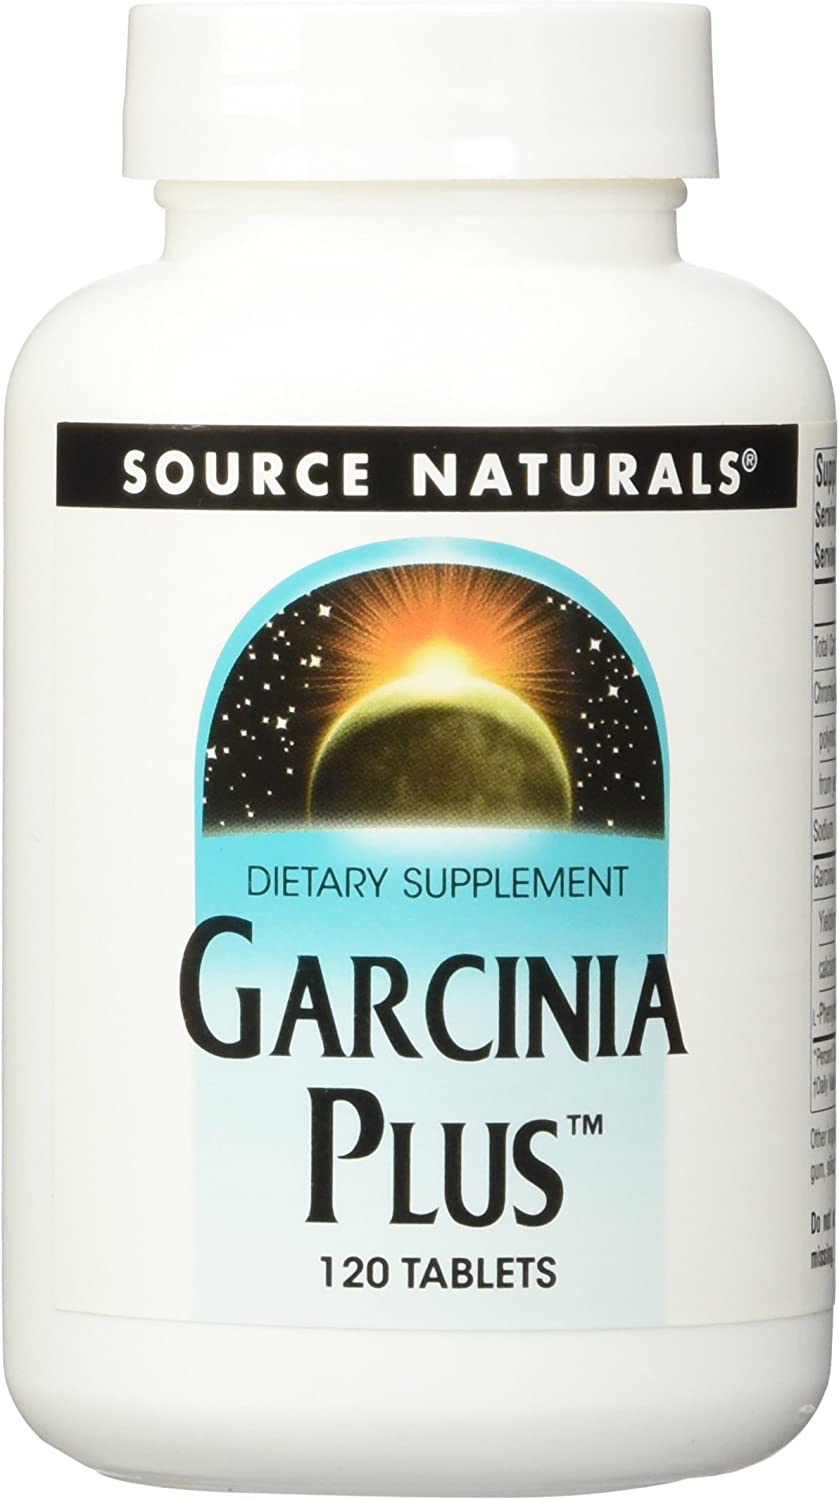 Source Naturals Garcinia Plus - Supports Weight Loss and Appetite Suppression - 120 Tablets